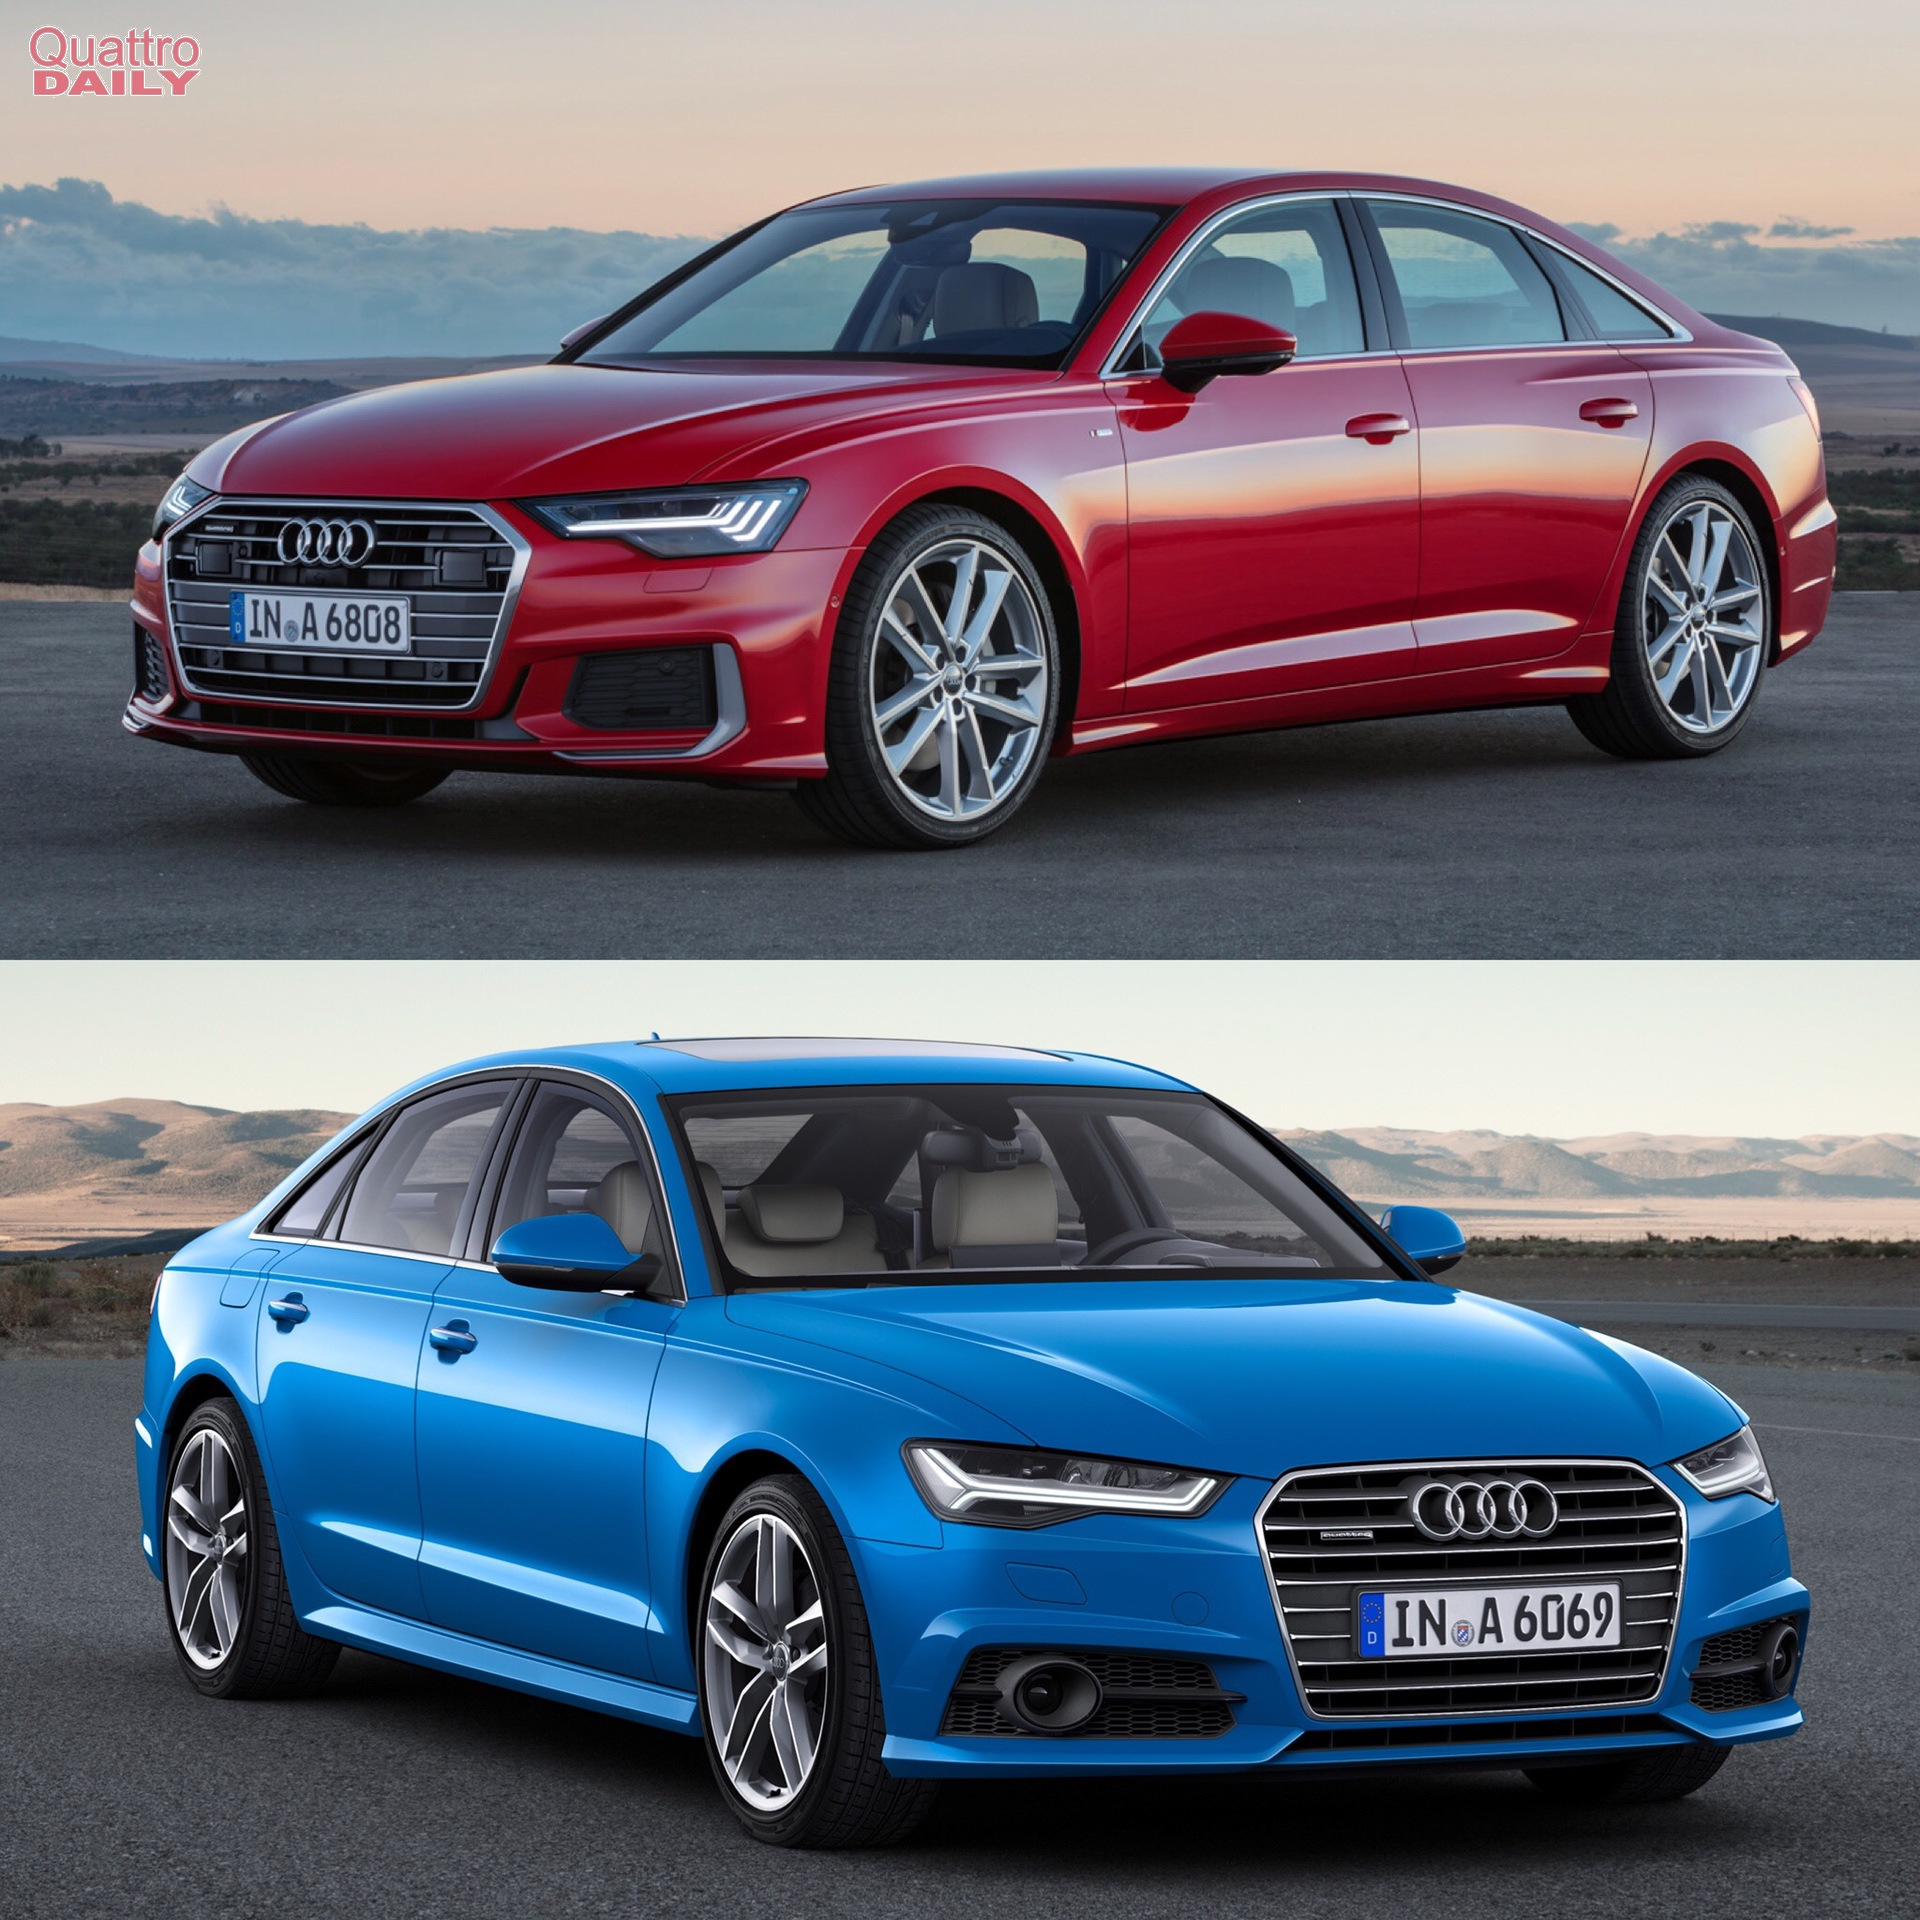 photo comparison audi a6 old c7 generation vs c8 generation. Black Bedroom Furniture Sets. Home Design Ideas